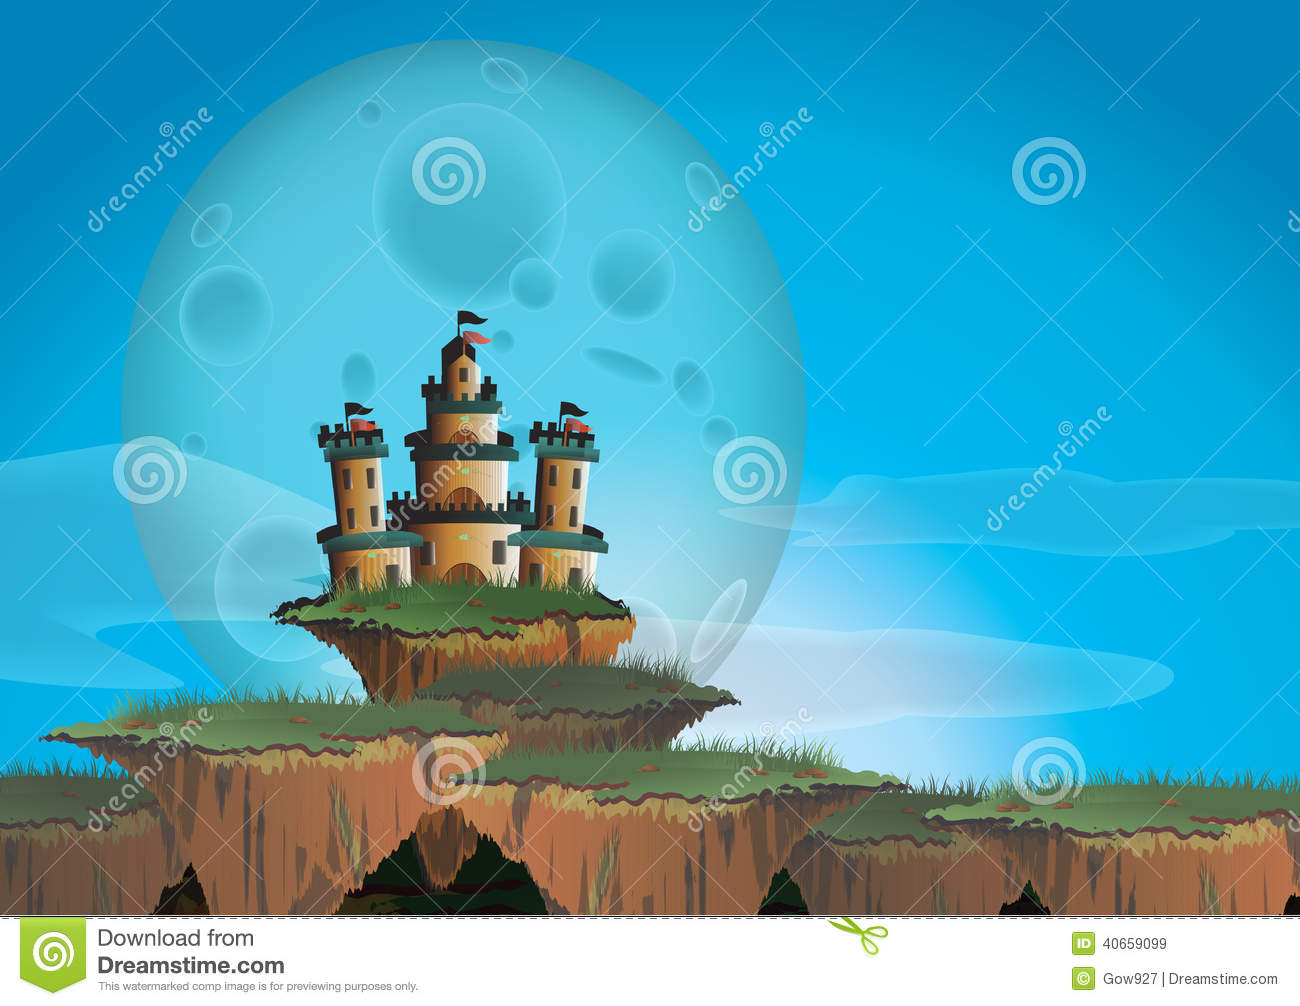 Fantasy Landscape With Castle On A Floating Island Stock